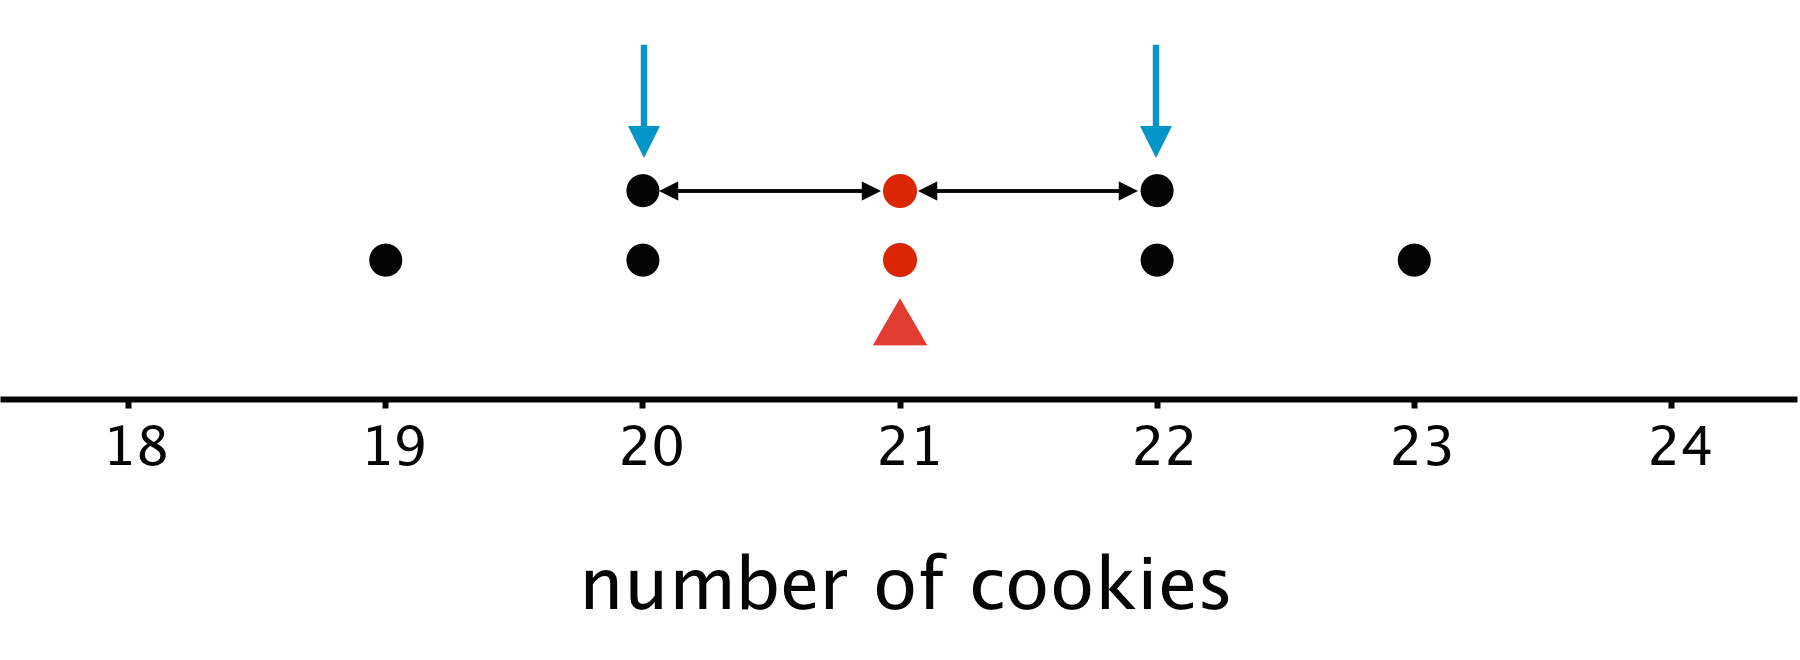 "A dot plot for ""number of cookies"". The numbers 18 through 24 are indicated. There is a triangle indicated at 21 cookies. There are arrows pointing to the dots at 20 and 22. There are lines indicating the distance between 20 and 21 and the distance between 21 and 22. The data are as follows: 18 cookies, 0 dots. 19 cookies, 1 dot. 20 cookies, 2 dots. 21 cookies, 2 dots. 22 cookies, 2 dots. 23 cookies, 1 dot. 24 cookies, 0 dots."